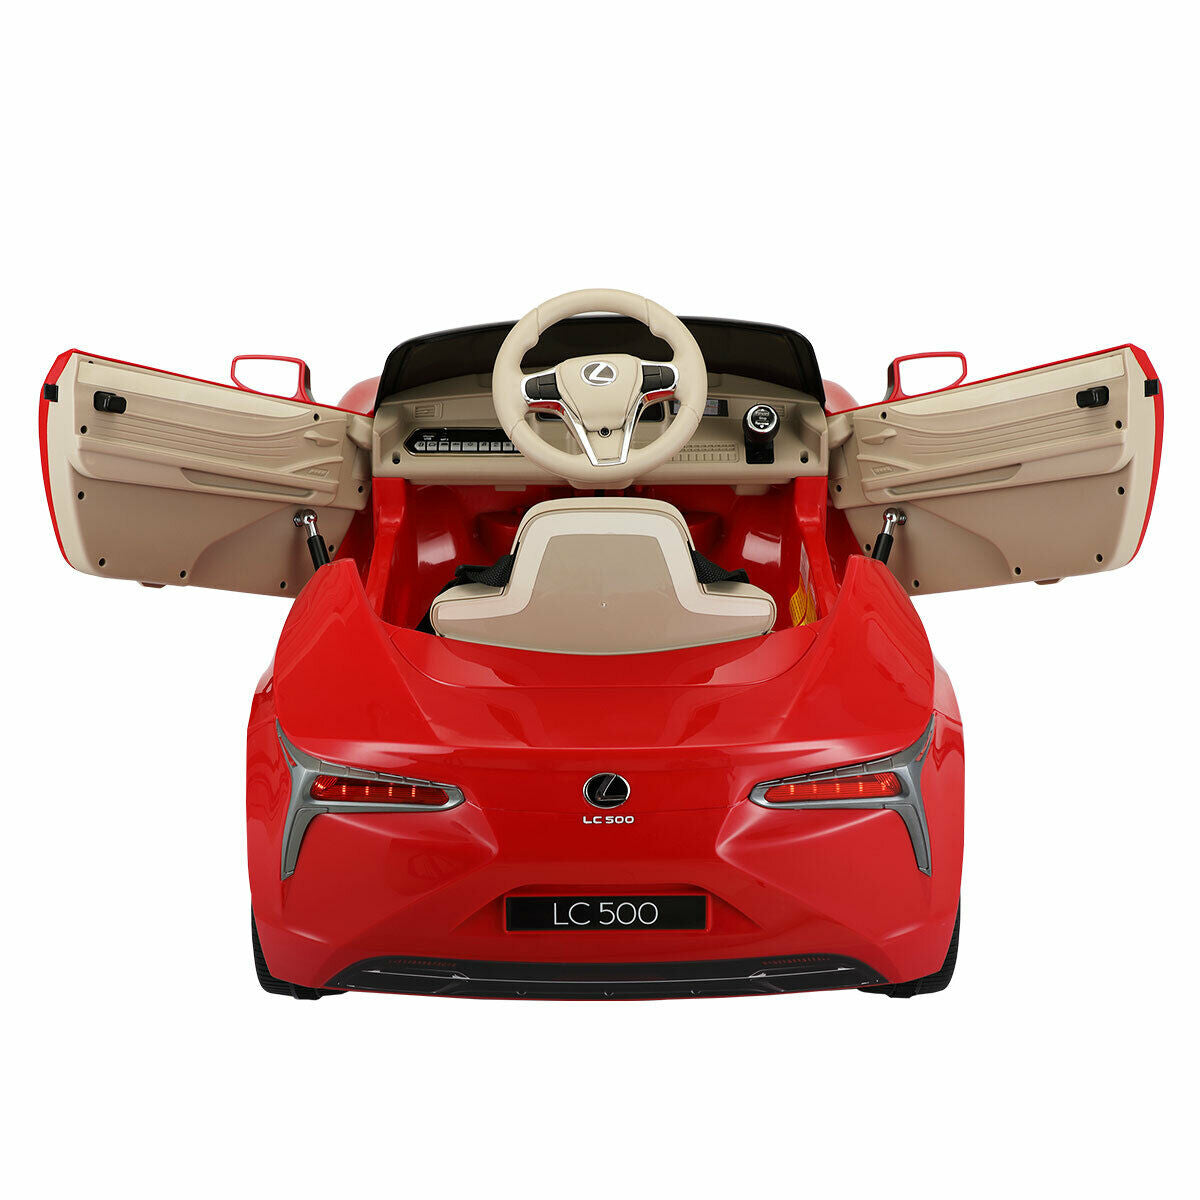 HYTX Kids Ride on car Lexus LC500 Licensed Remote Control Electric Vehicle